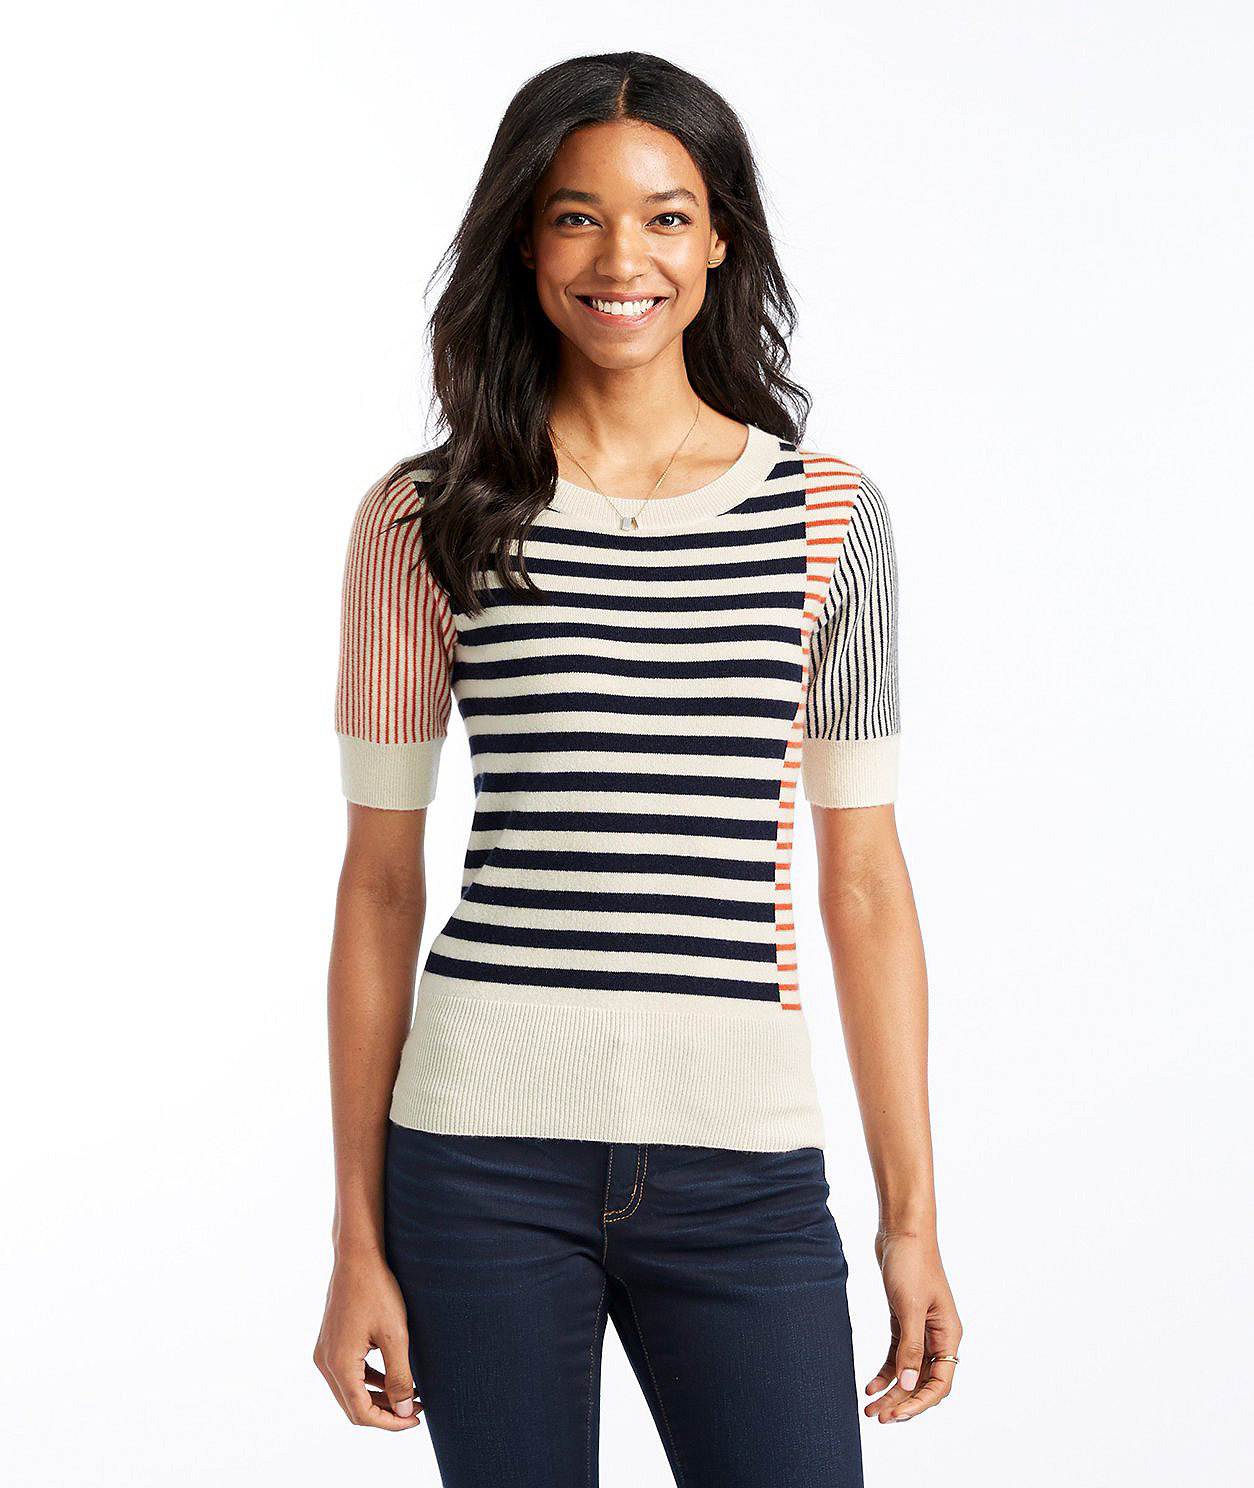 Signature Cashmere Sweater, Short Sleeve Stripe by L.L.Bean